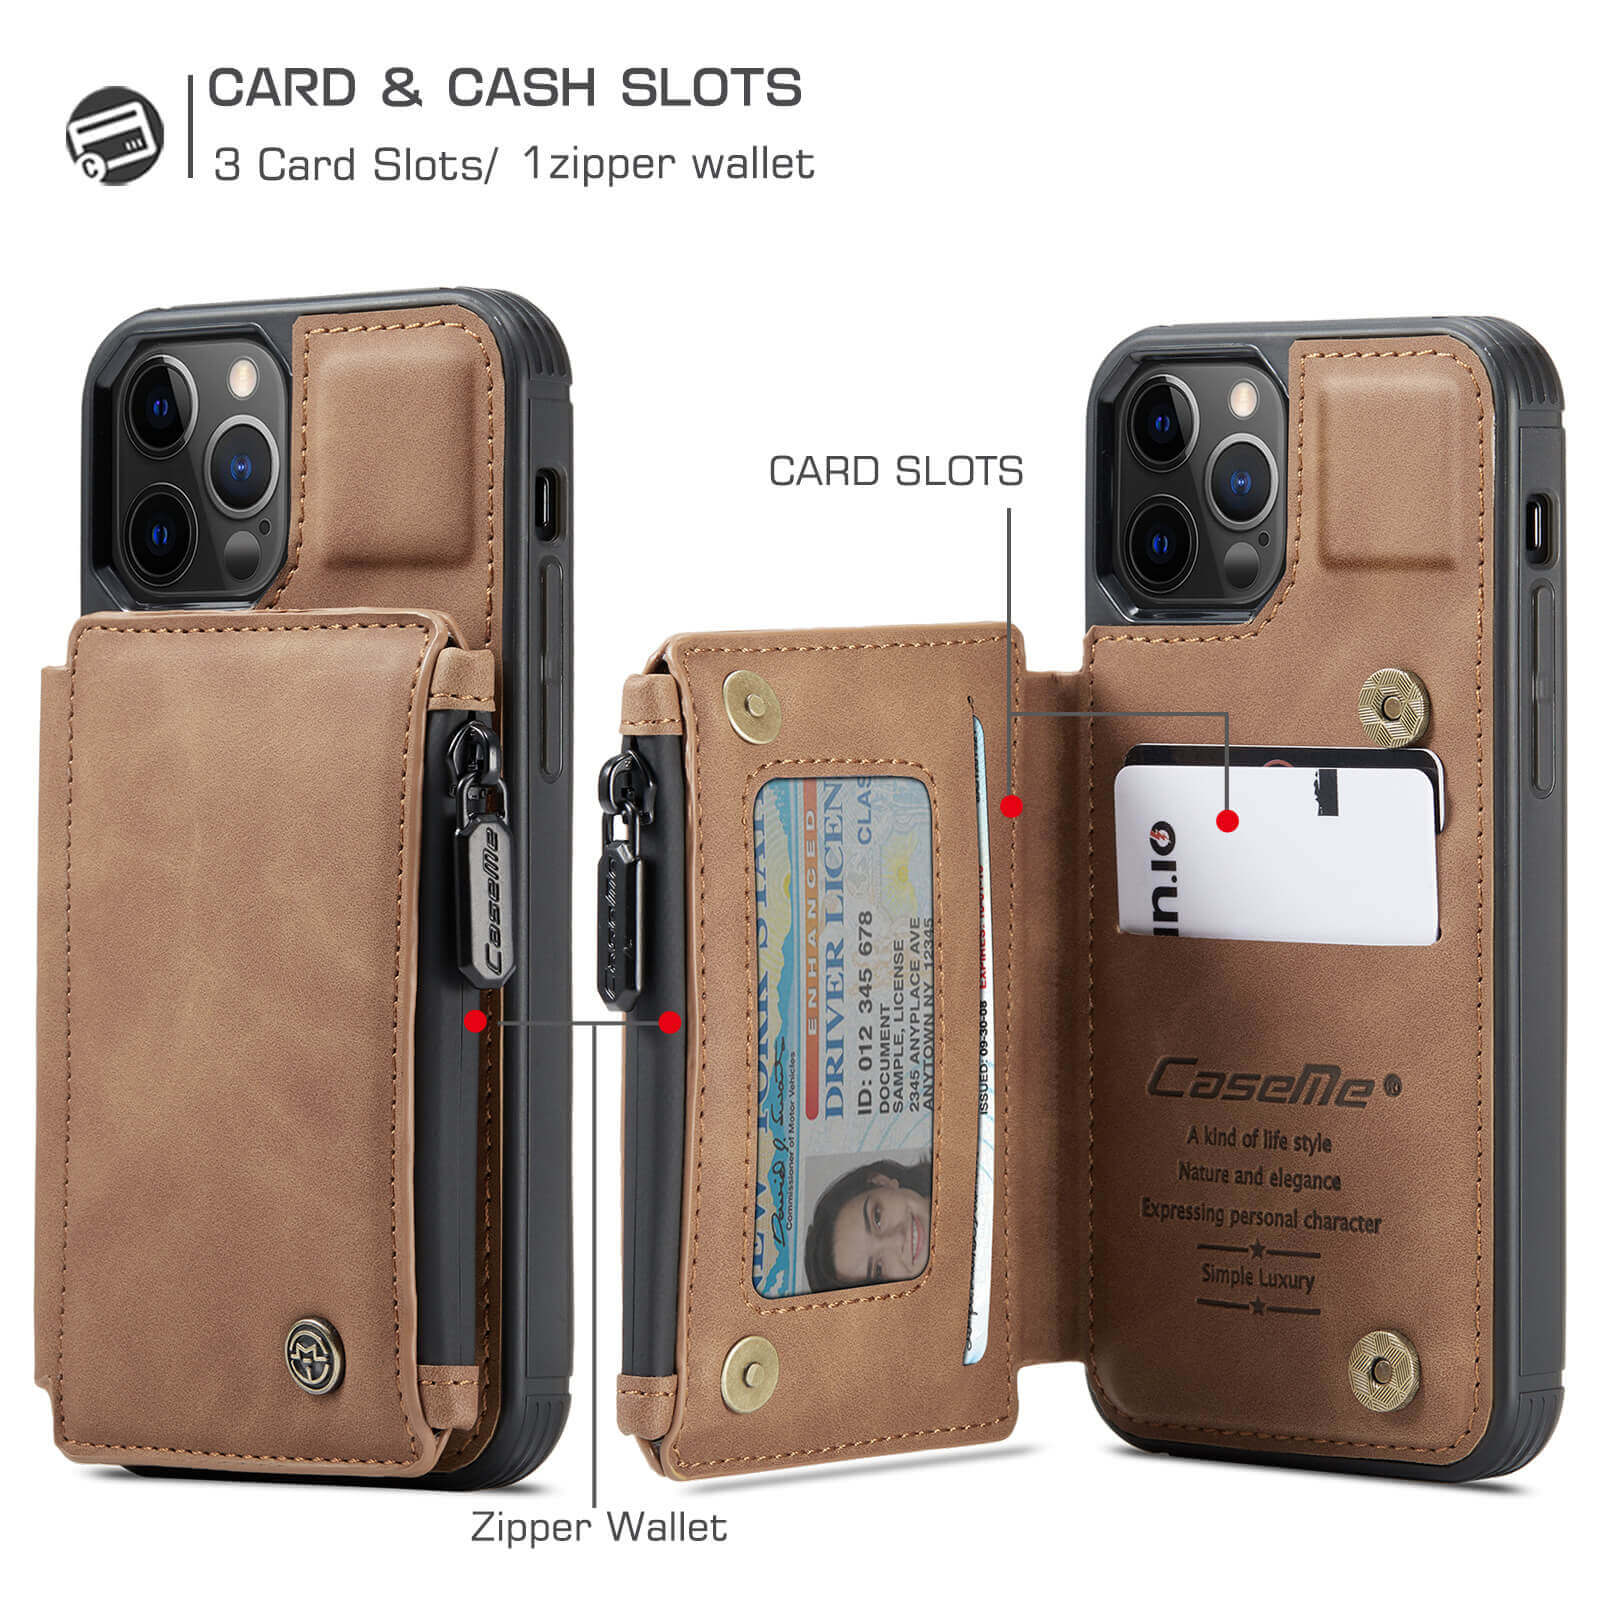 iphone protective leather case with RFID card holder wallet case- product display-card slot-coin purse-popmoca